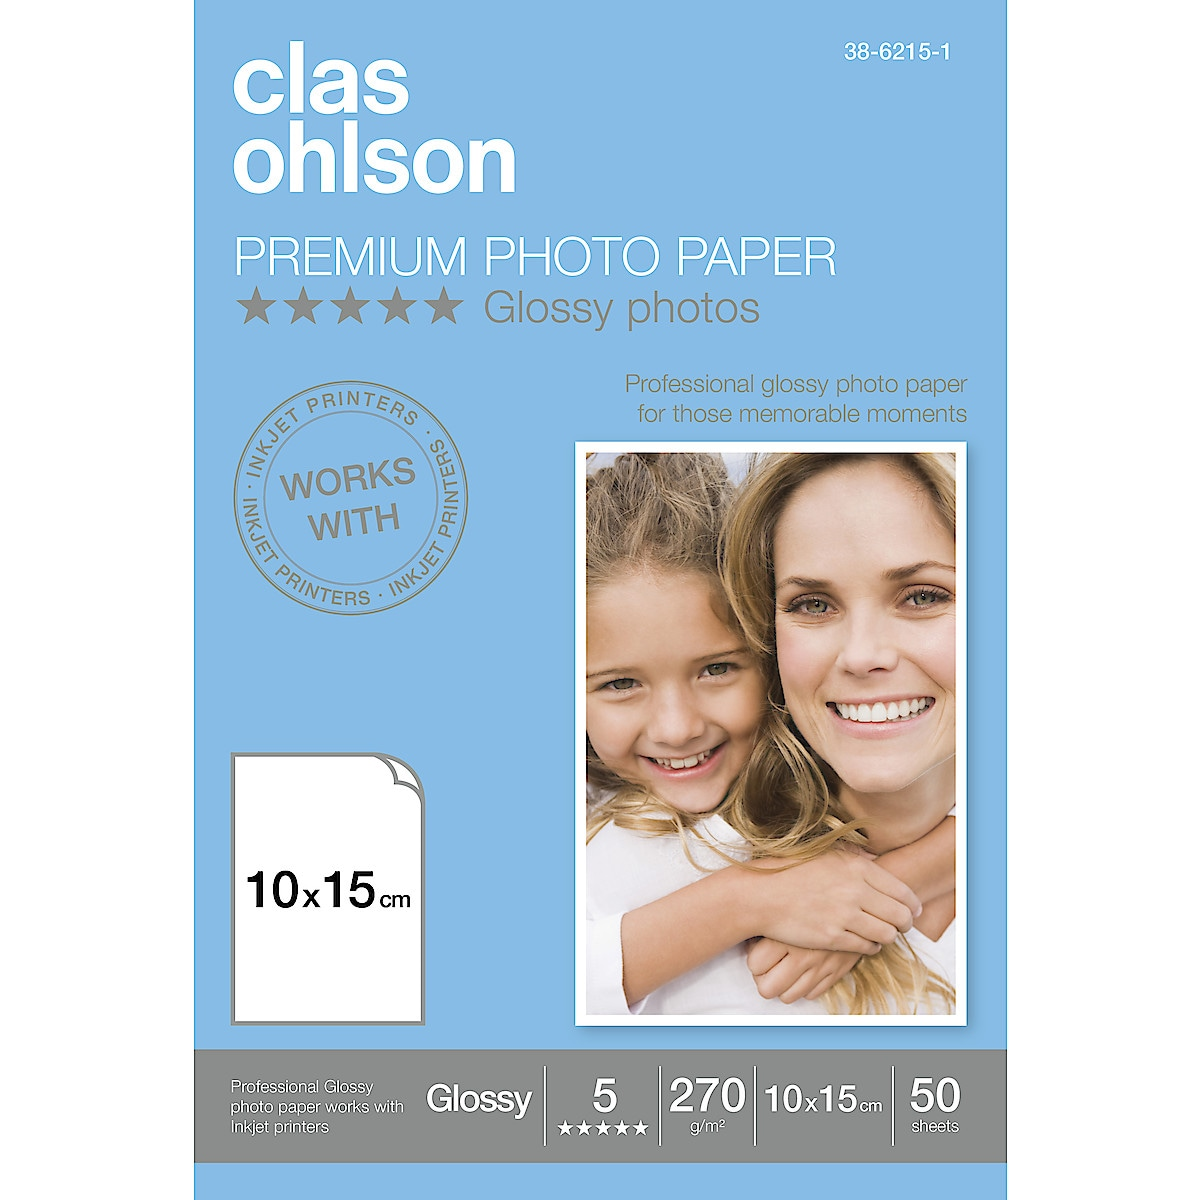 Clas Ohlson Glossy Photo Paper